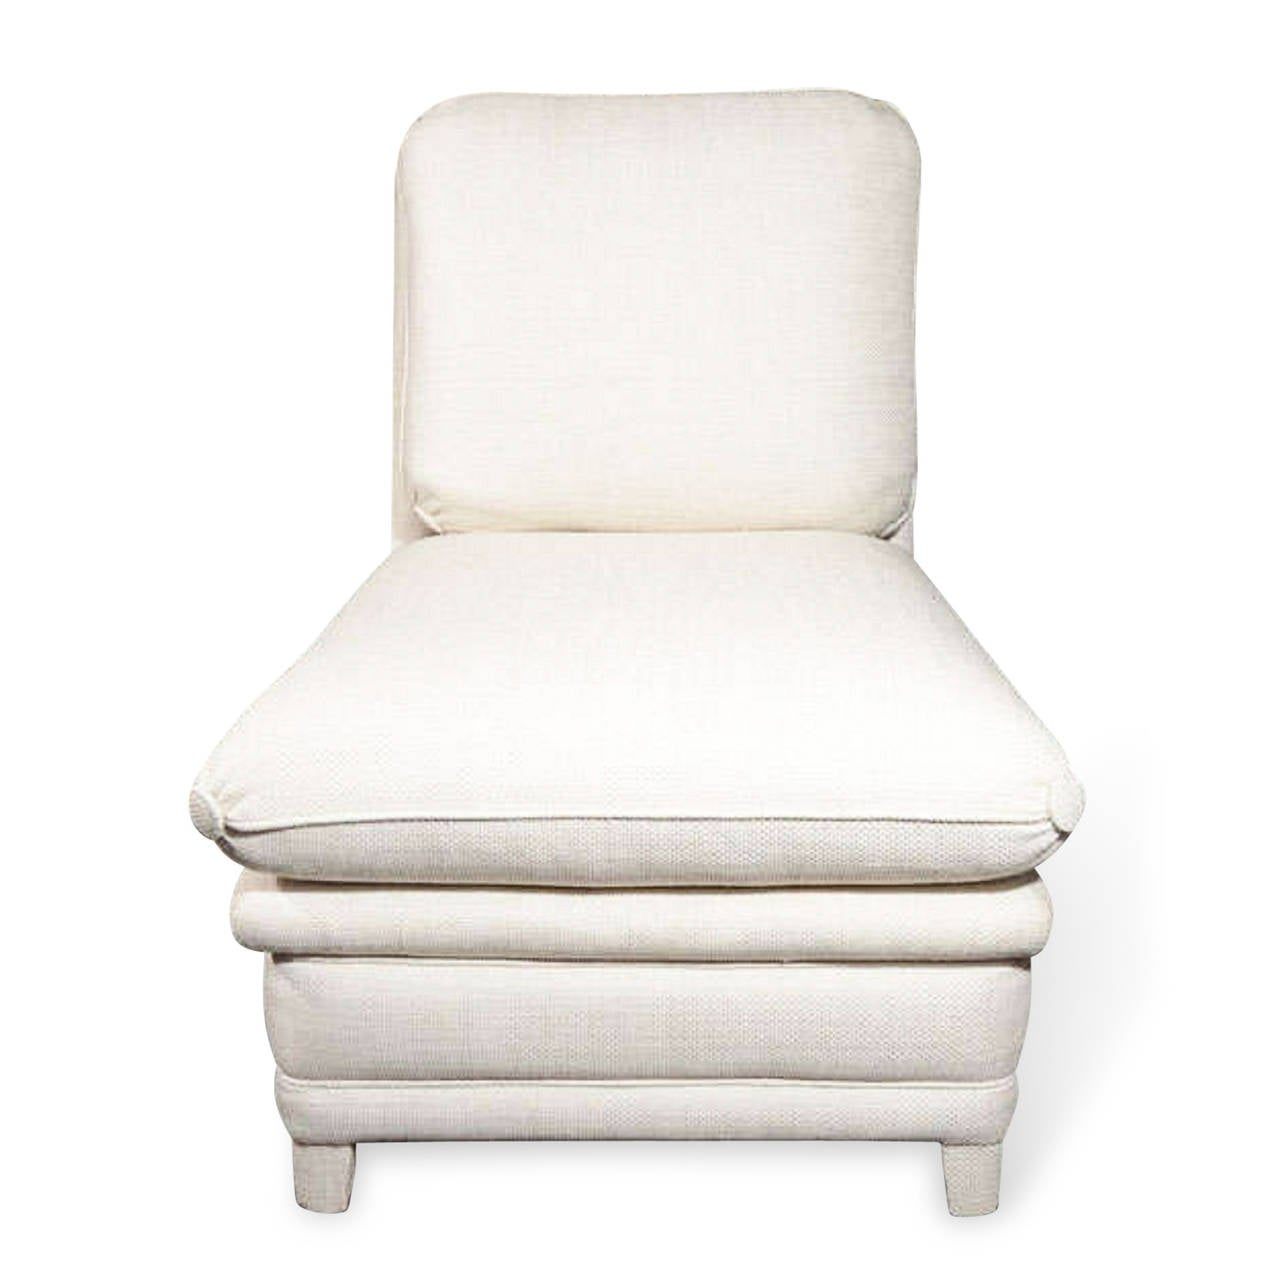 white leather slipper chair revolving catalogue upholstered by billy baldwin at 1stdibs